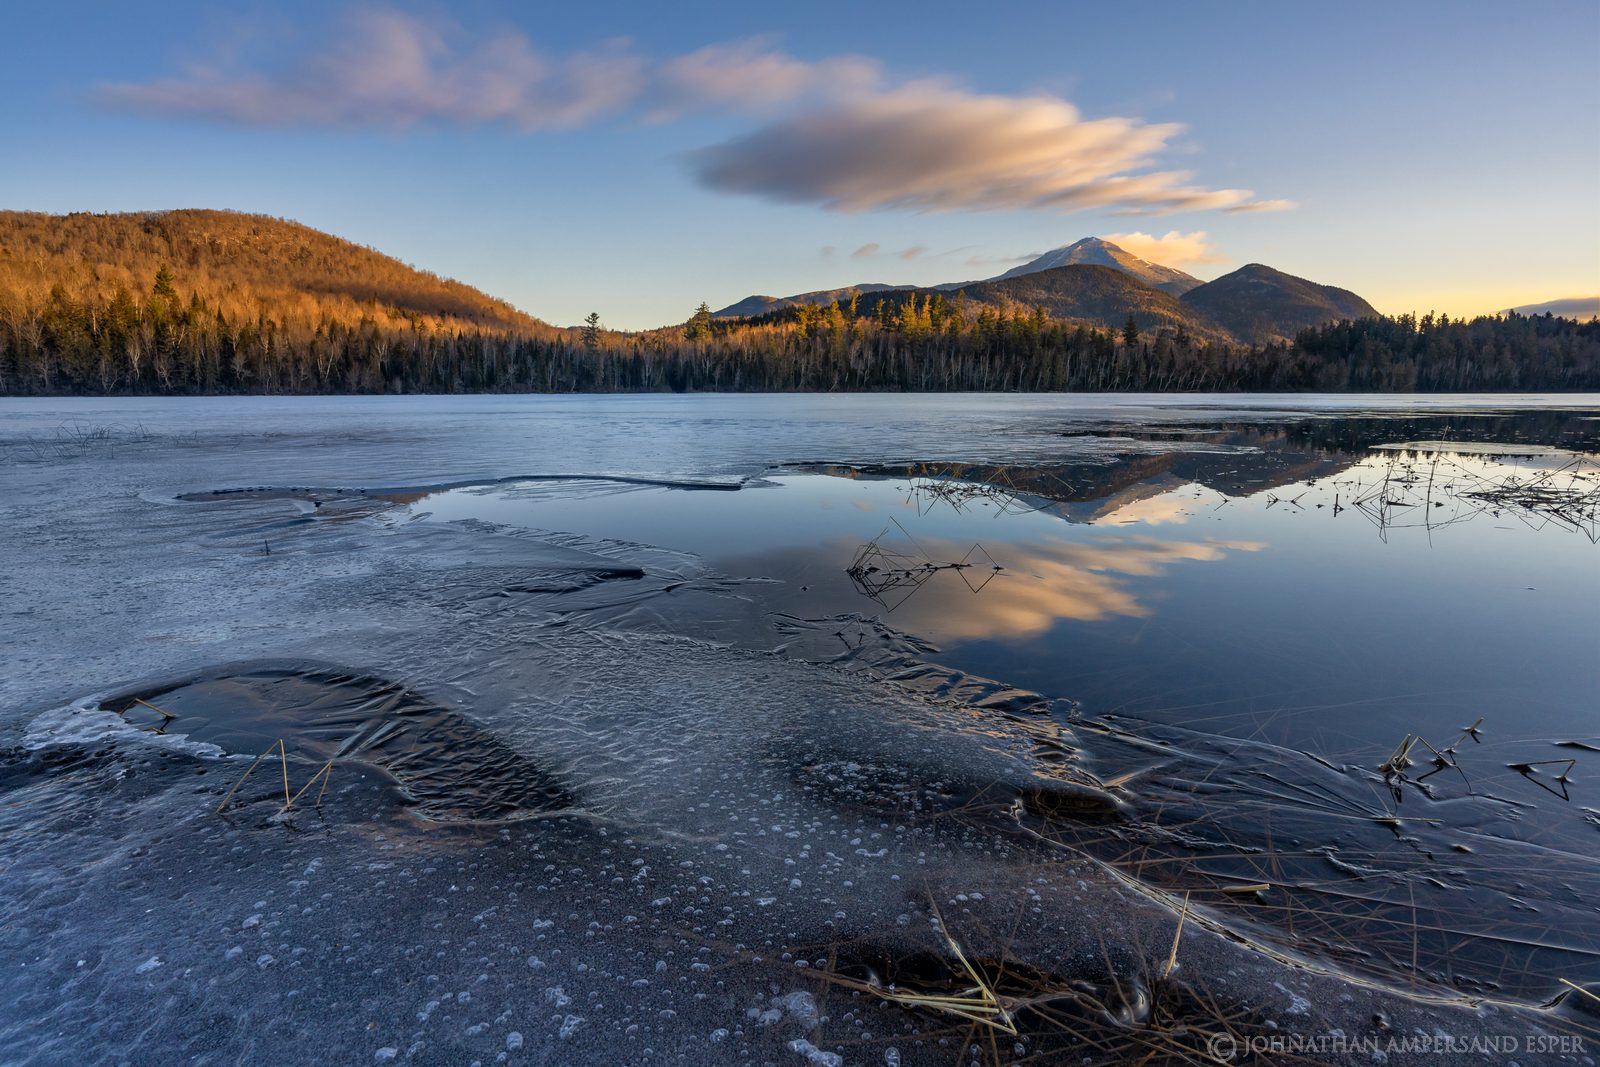 Connery Pond,Whiteface Mt,Whiteface,Whiteface Mountain,winter,2020,spring,outlet,lake,pond,Adirondack,sunrise,clouds,, photo